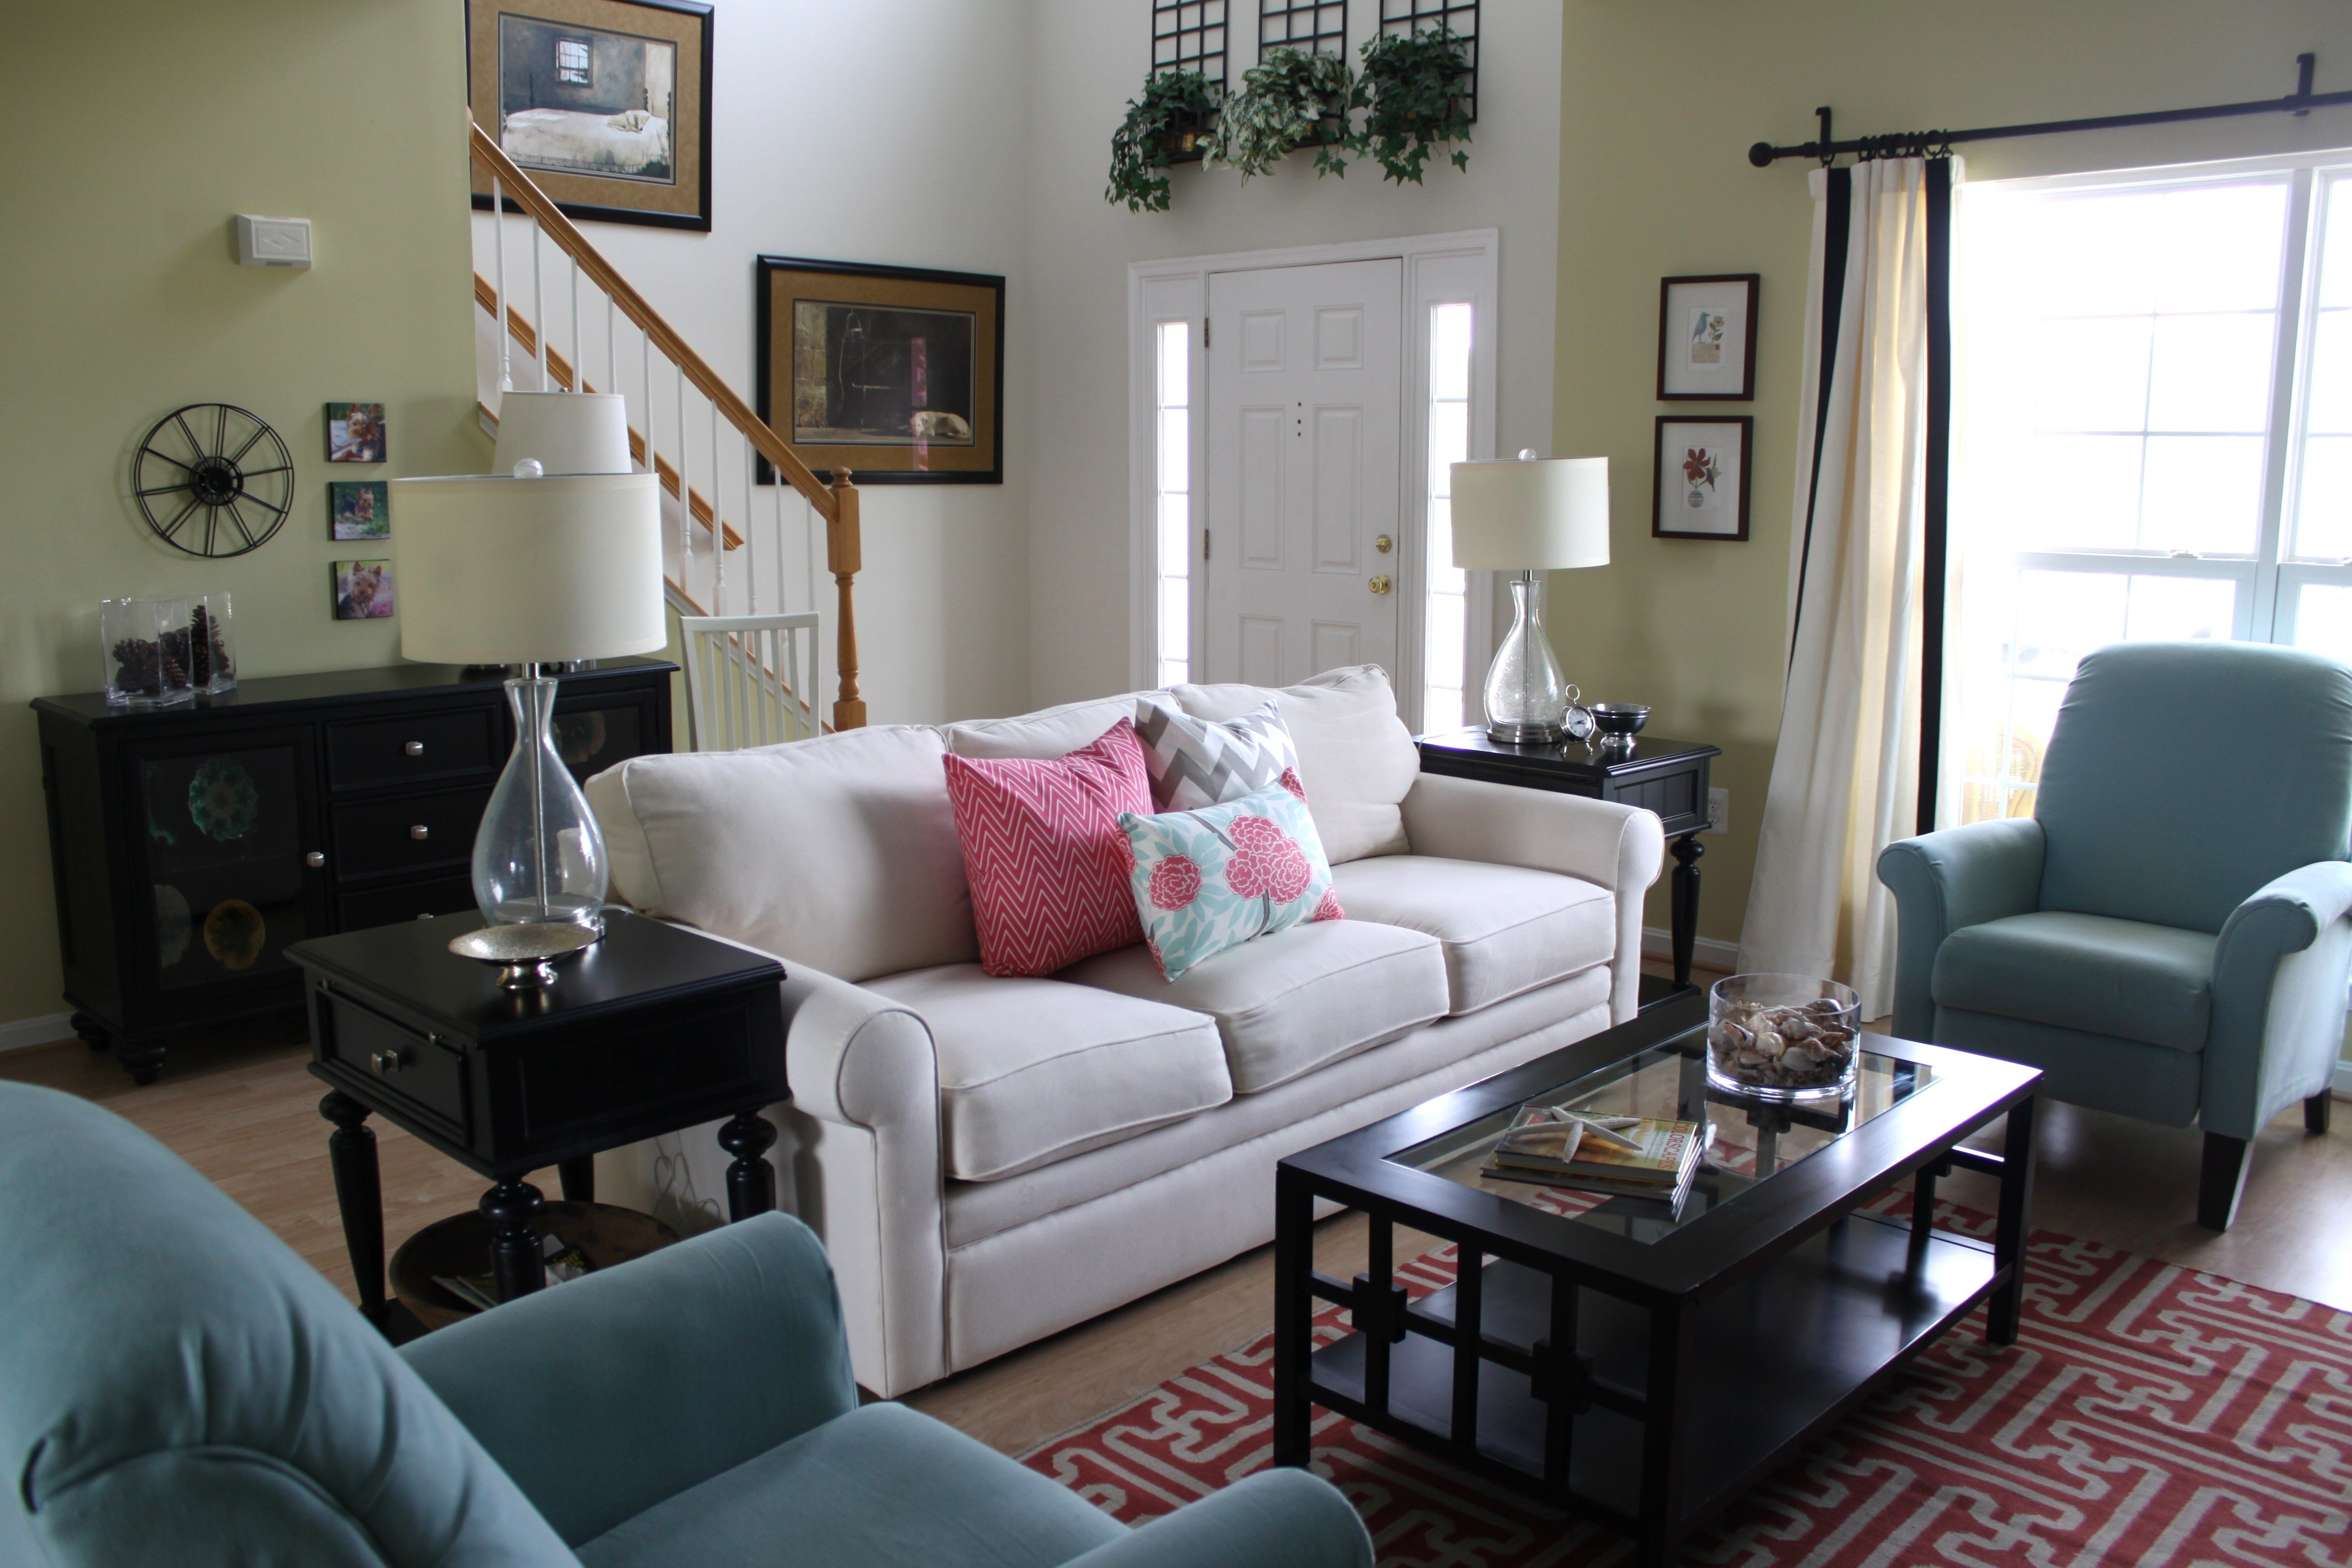 10 Attractive Living Room Decor Ideas On A Budget living room decorations on a budget amusing popular of apartment 2021